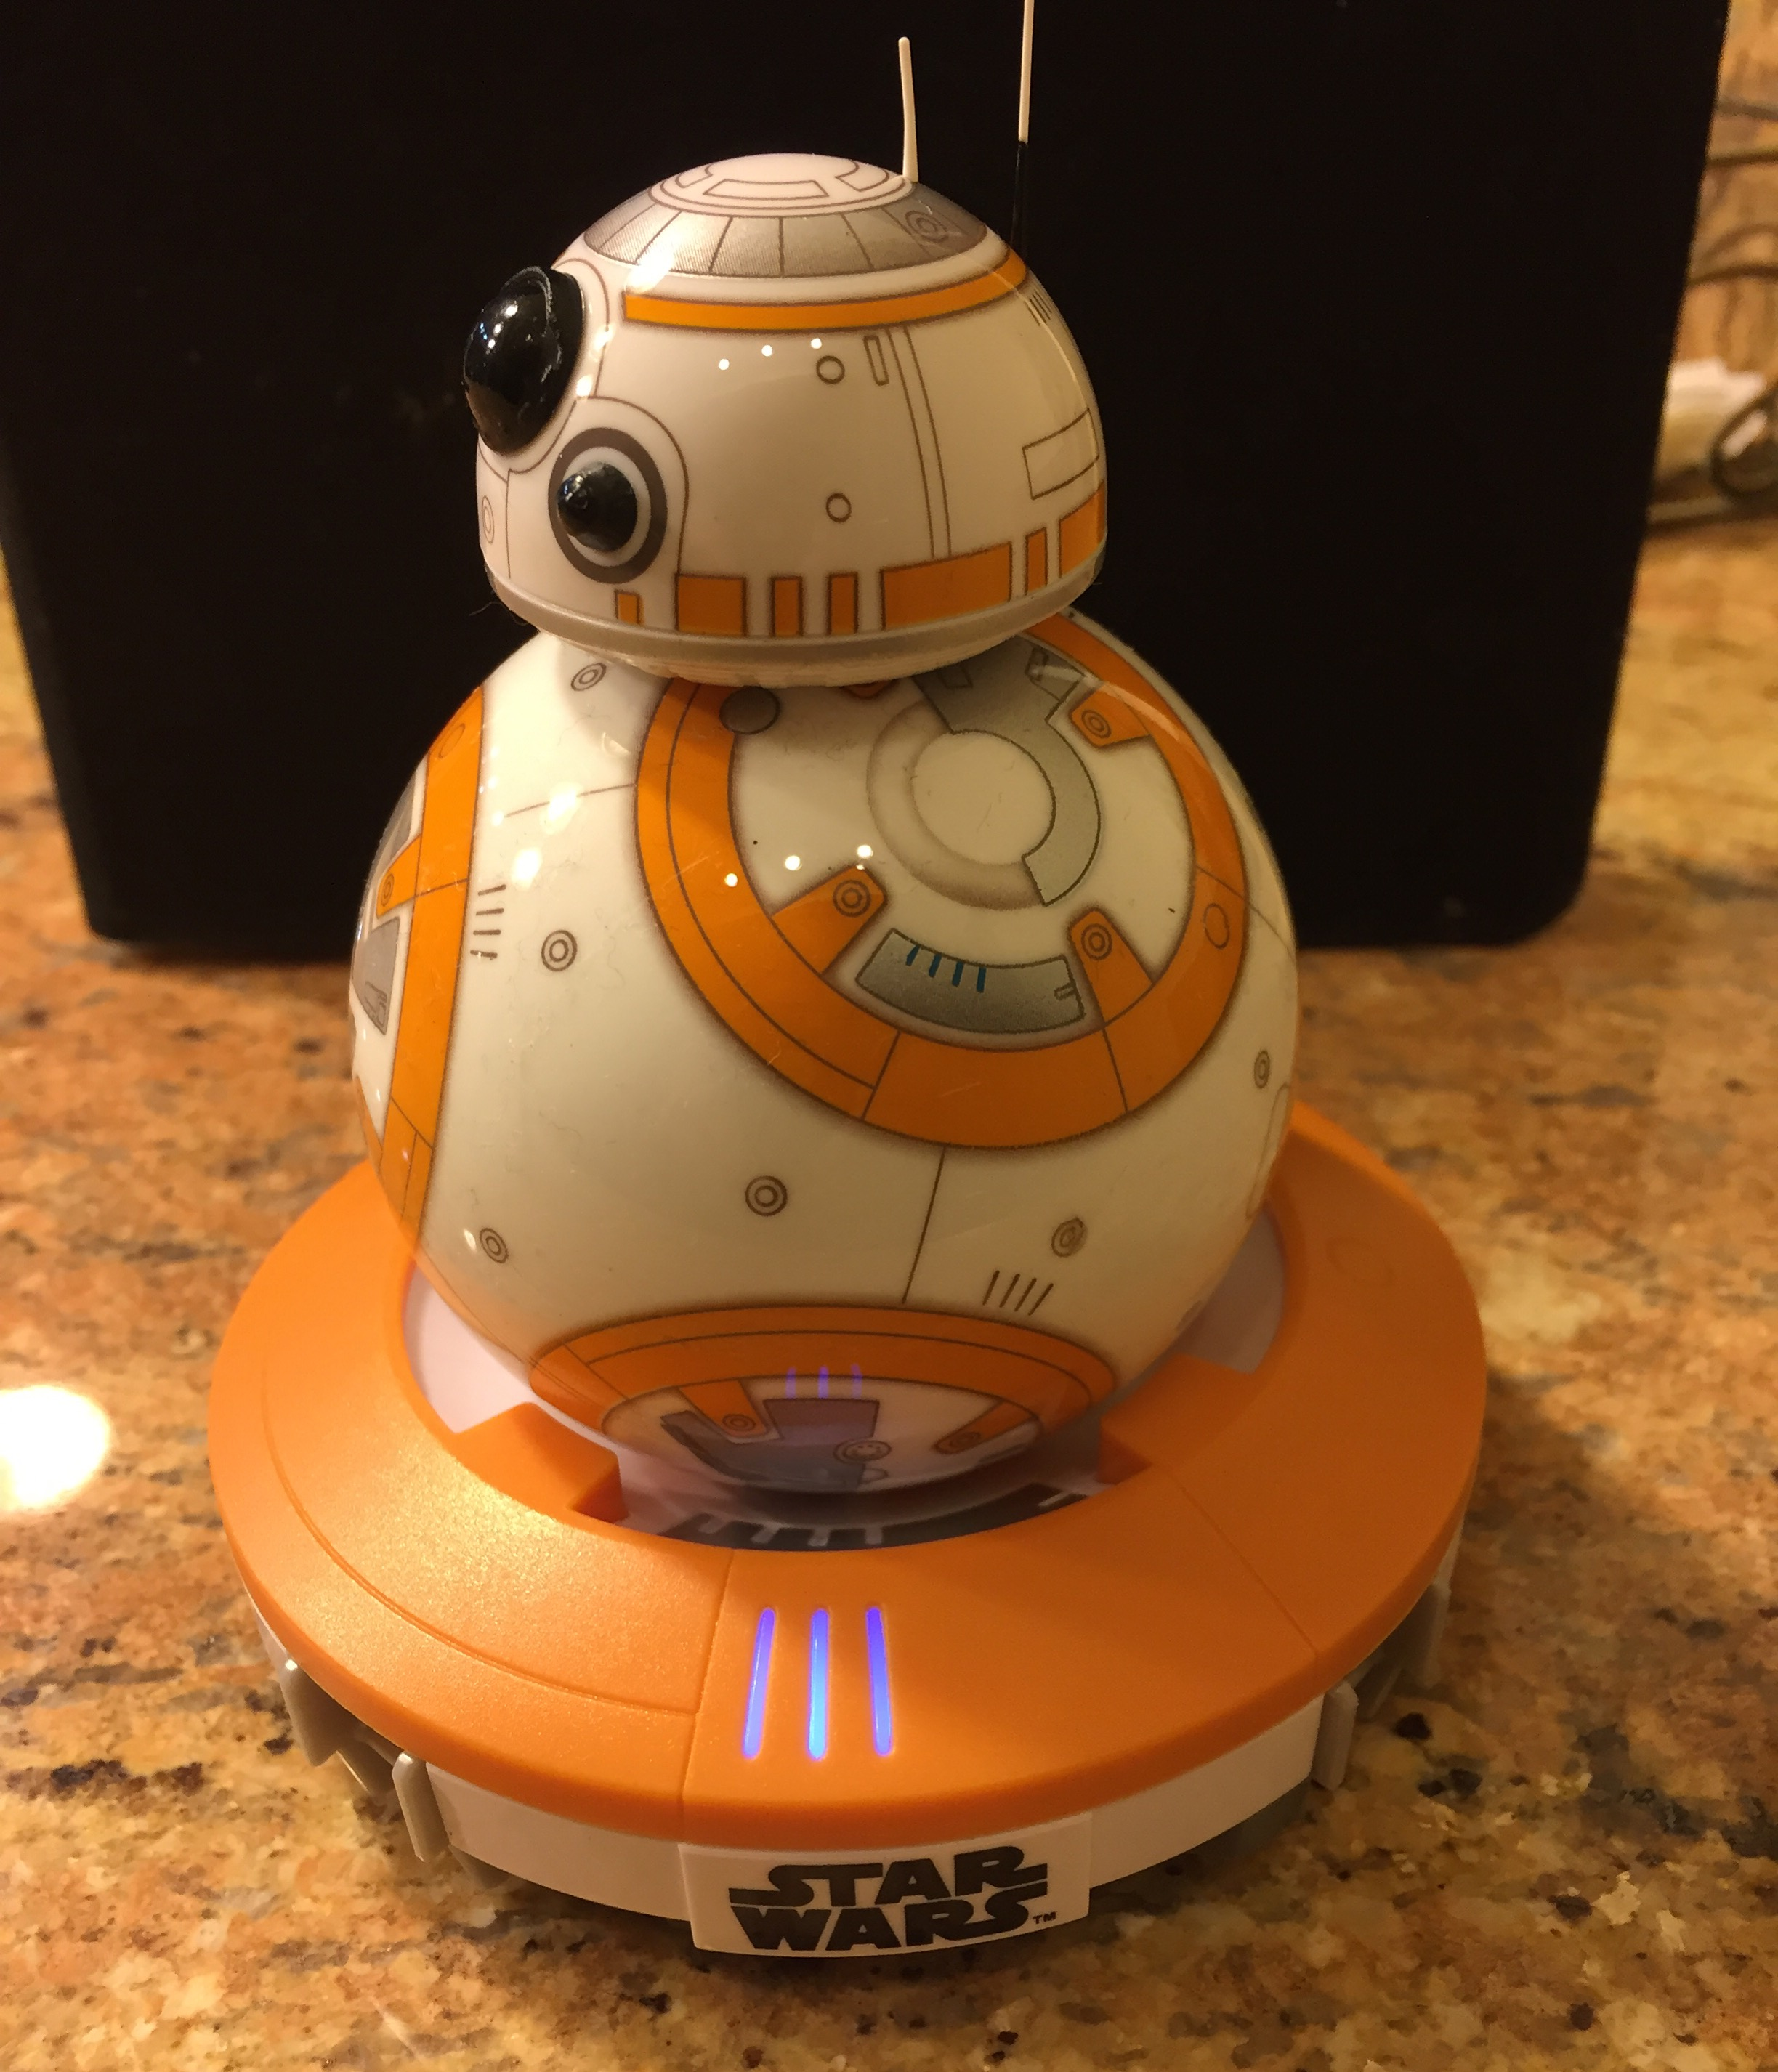 Coloring pages app -  Maythe4thbewithyou The Sphero App Enabled Bb 8 Is Most Definitely The Droid I M